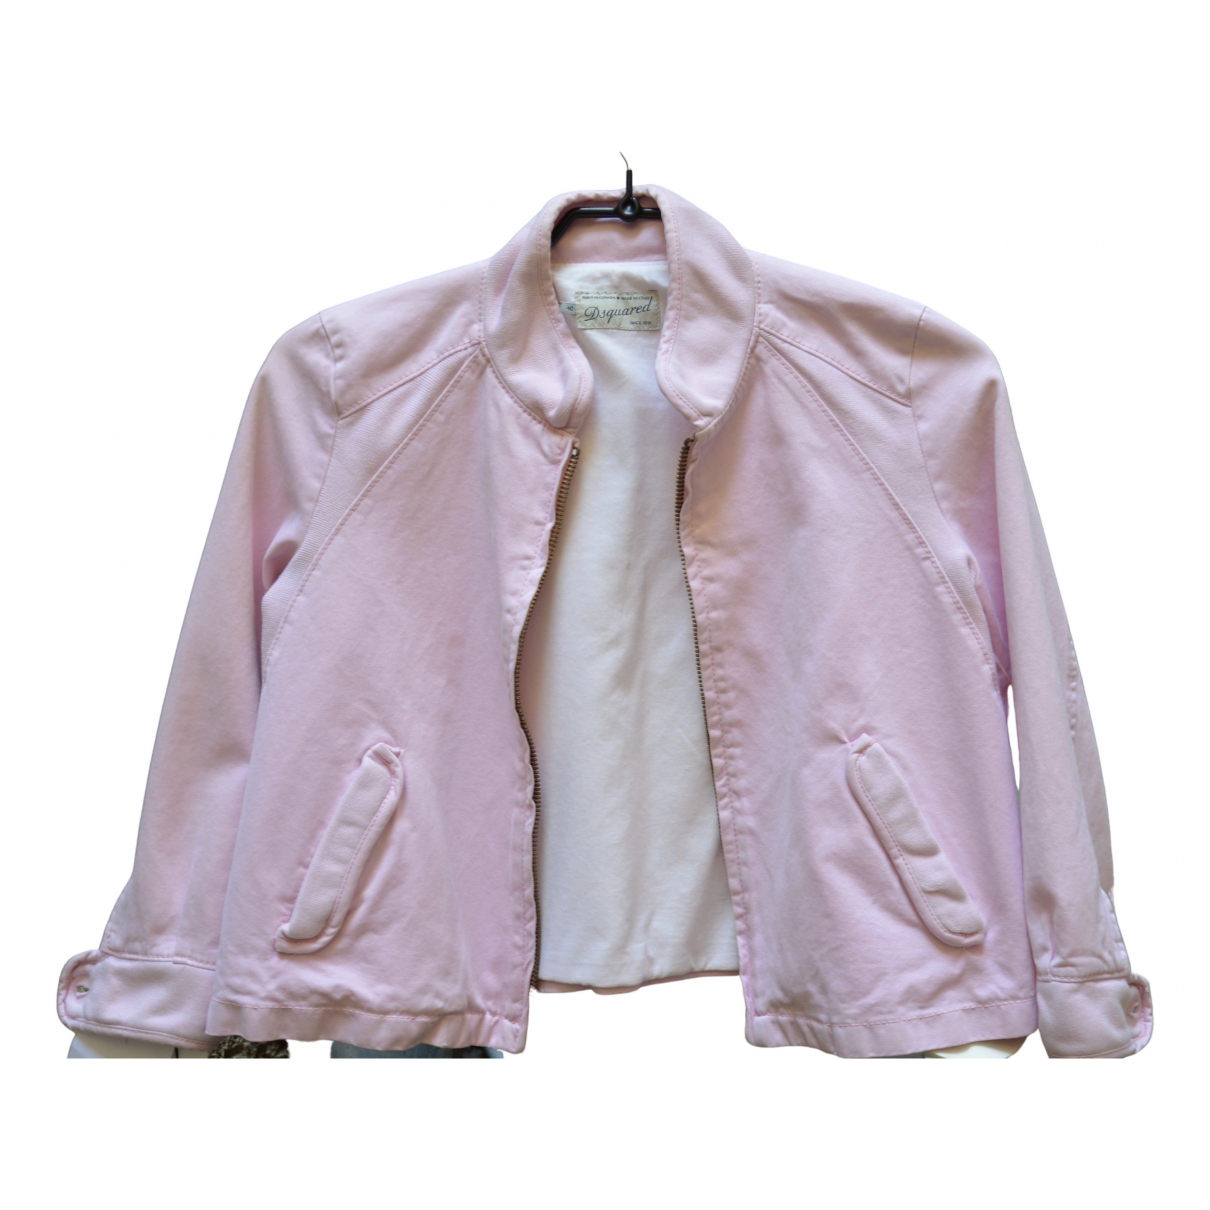 Dsquared2 N Pink Cotton jacket for Women 36 FR